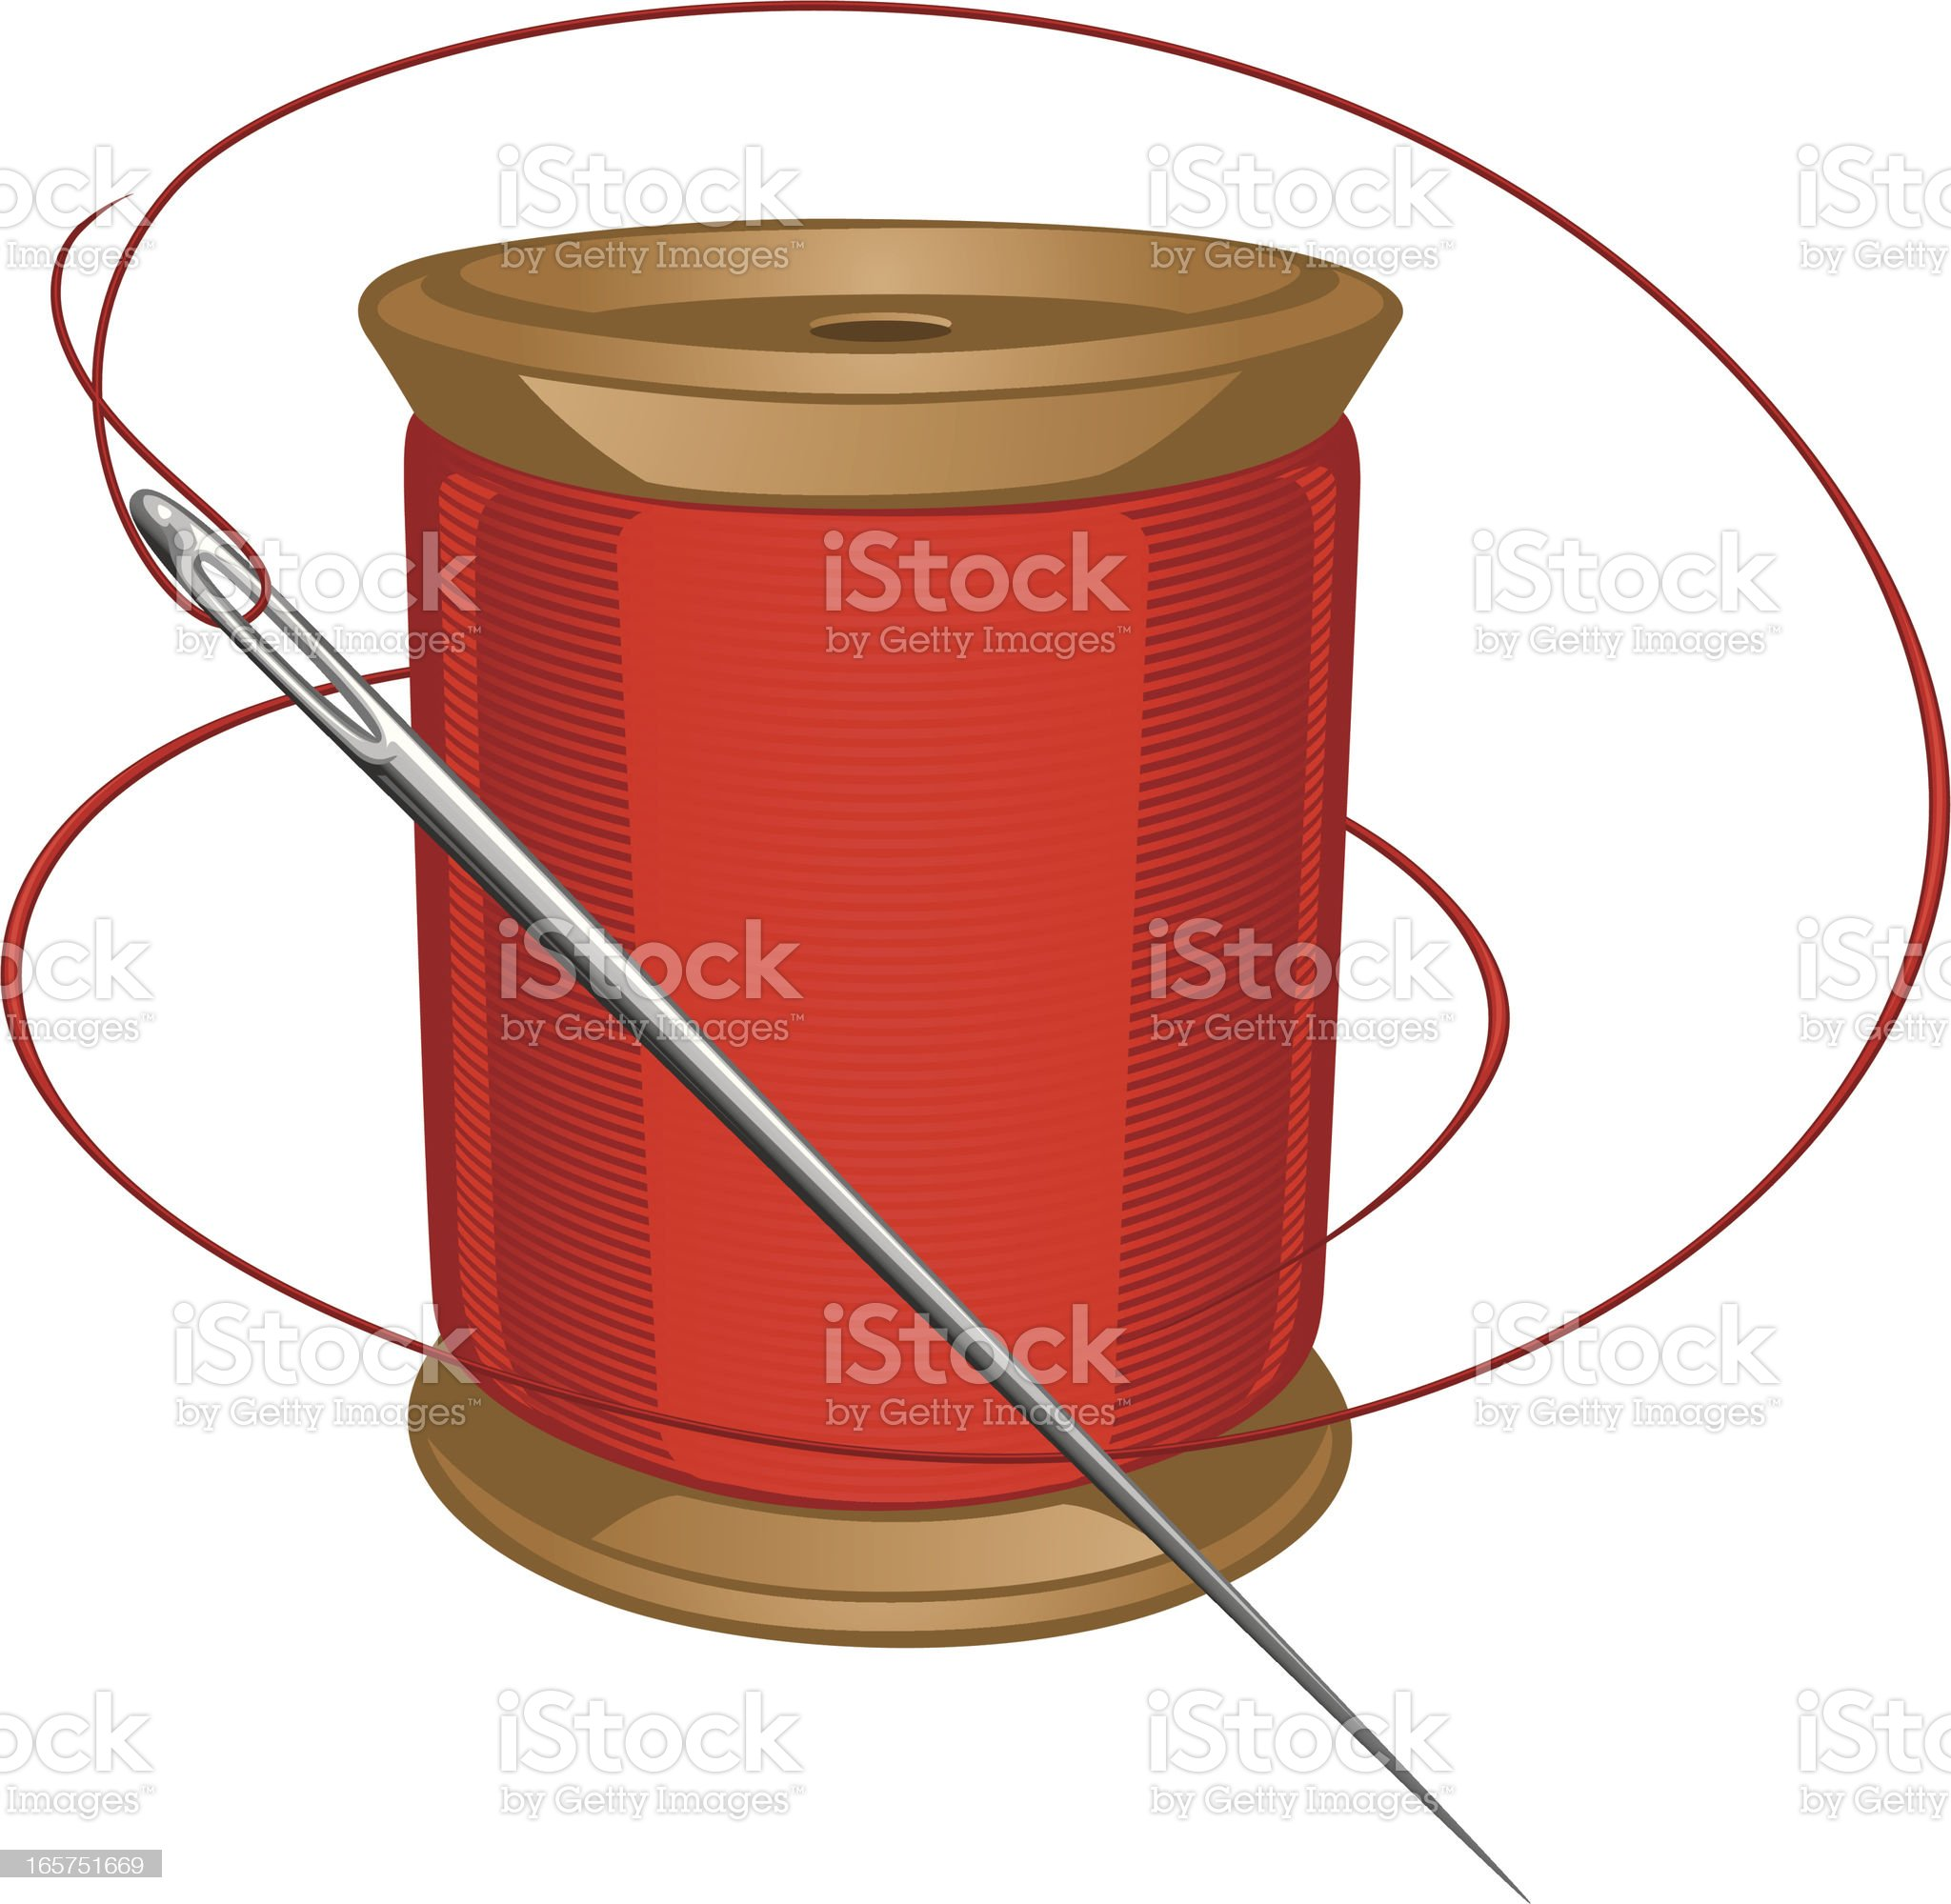 spool and needle royalty-free stock vector art